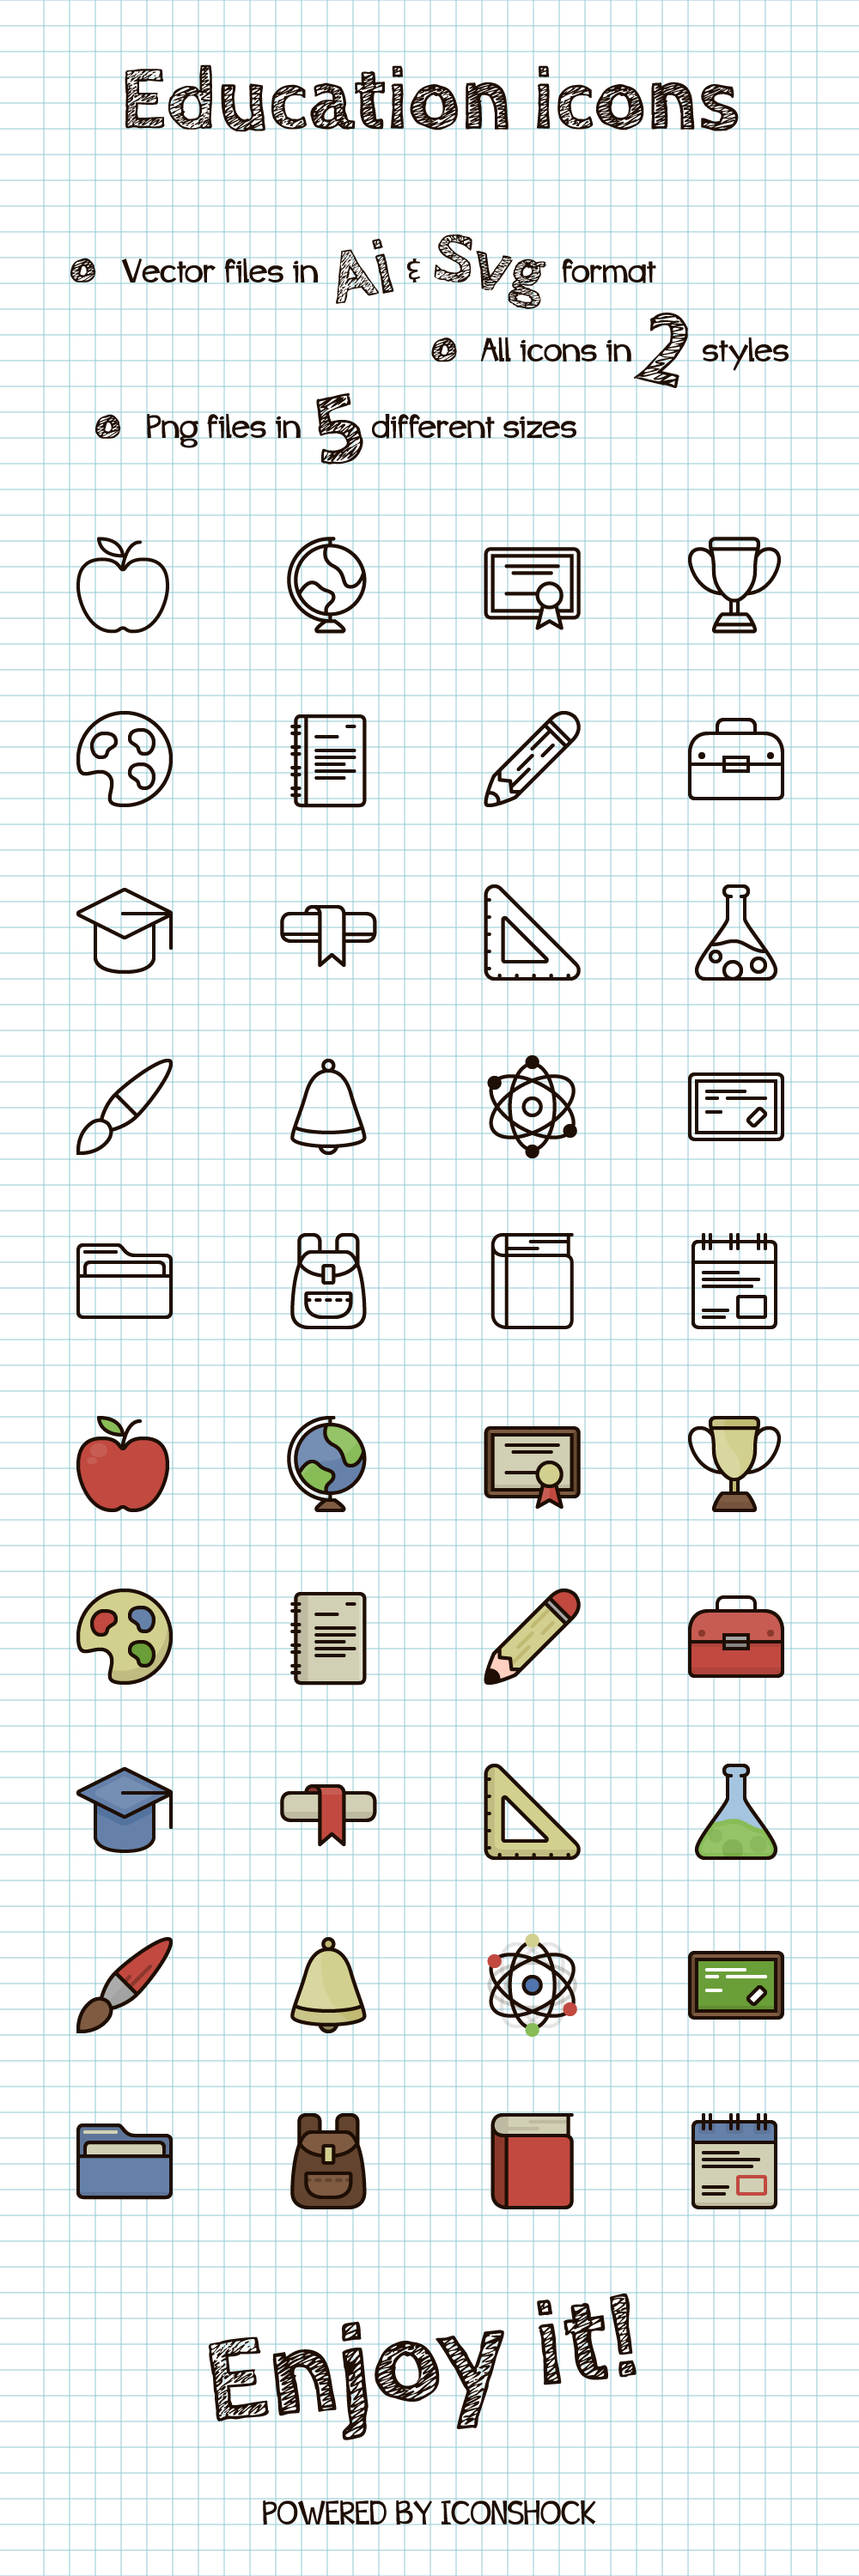 Free Vector Education Icons